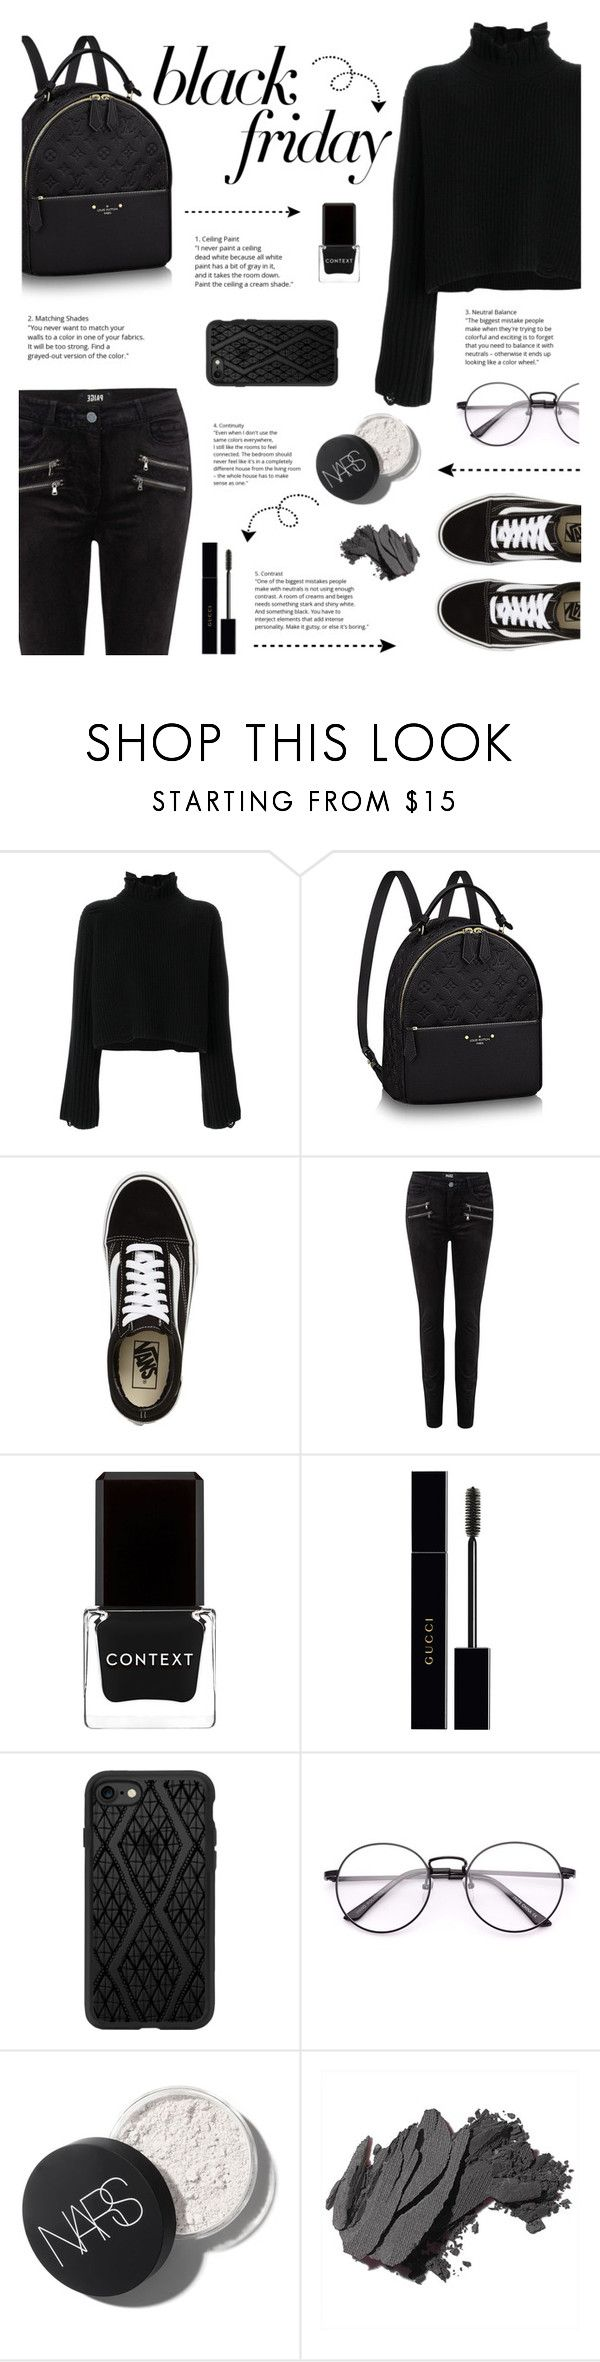 """Steal Those Deals: Black Friday"" by nvtellan ❤ liked on Polyvore featuring Golden Goose, Vans, Paige Denim, Context, Gucci, Casetify, Bobbi Brown Cosmetics and blackfriday"